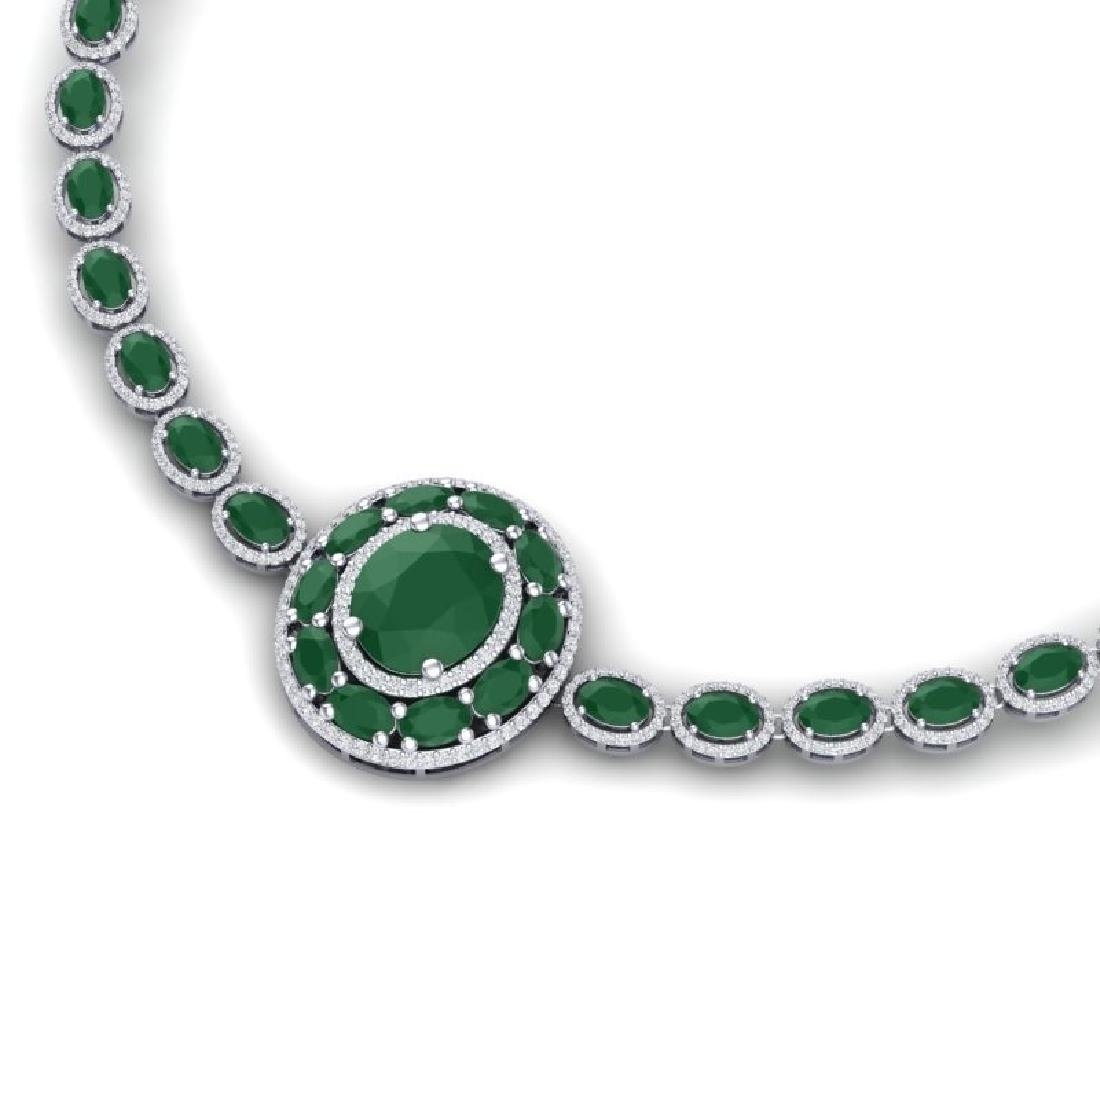 43.54 CTW Royalty Emerald & VS Diamond Necklace 18K